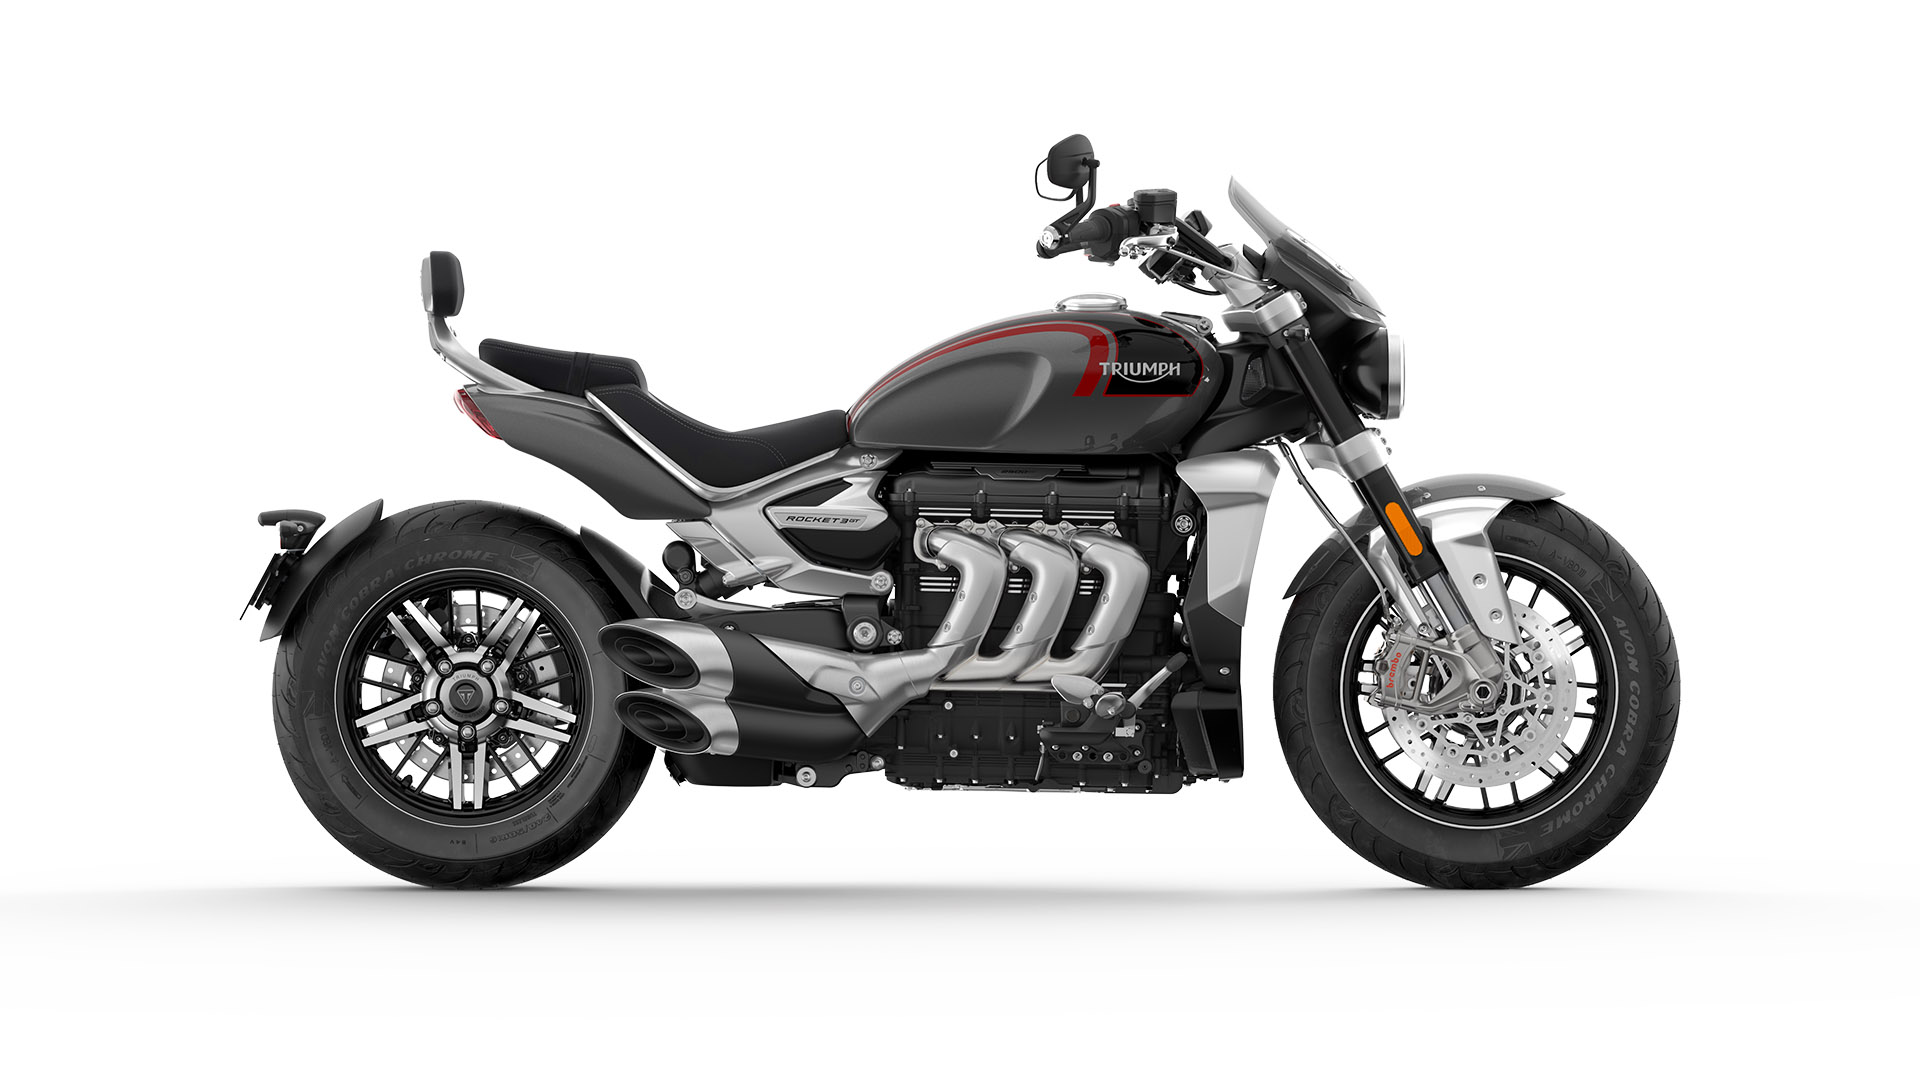 Side CGI shot of Triumph All-new Silver Ice and storm grey colour of the Rocket 3 GT.